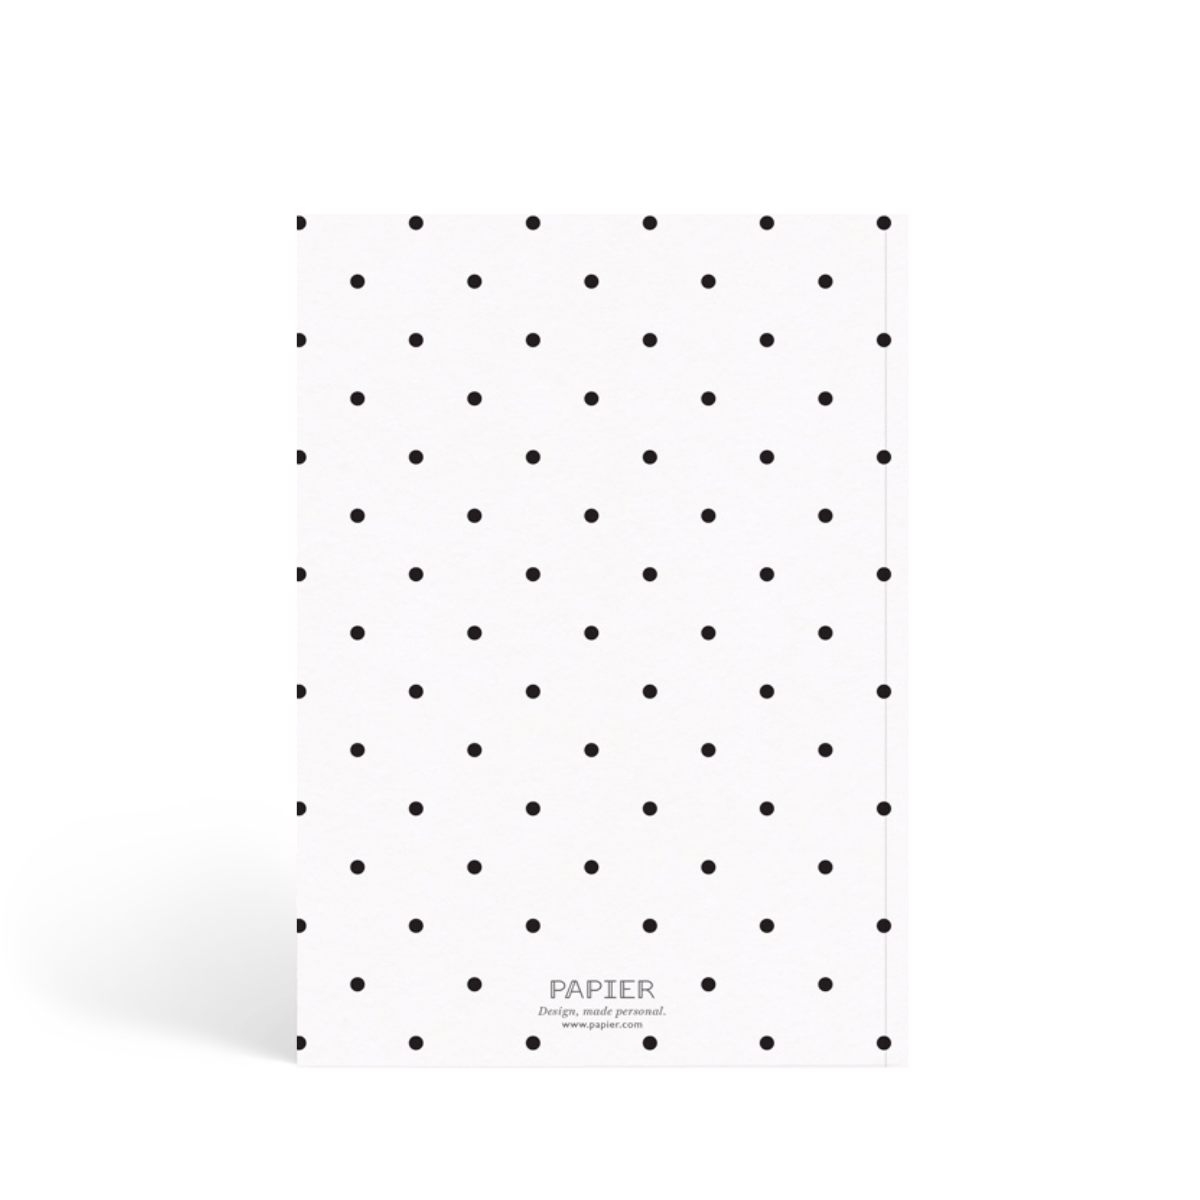 Https%3a%2f%2fwww.papier.com%2fproduct image%2f6691%2f5%2fpolka dots 1661 back 1461689914.png?ixlib=rb 1.1